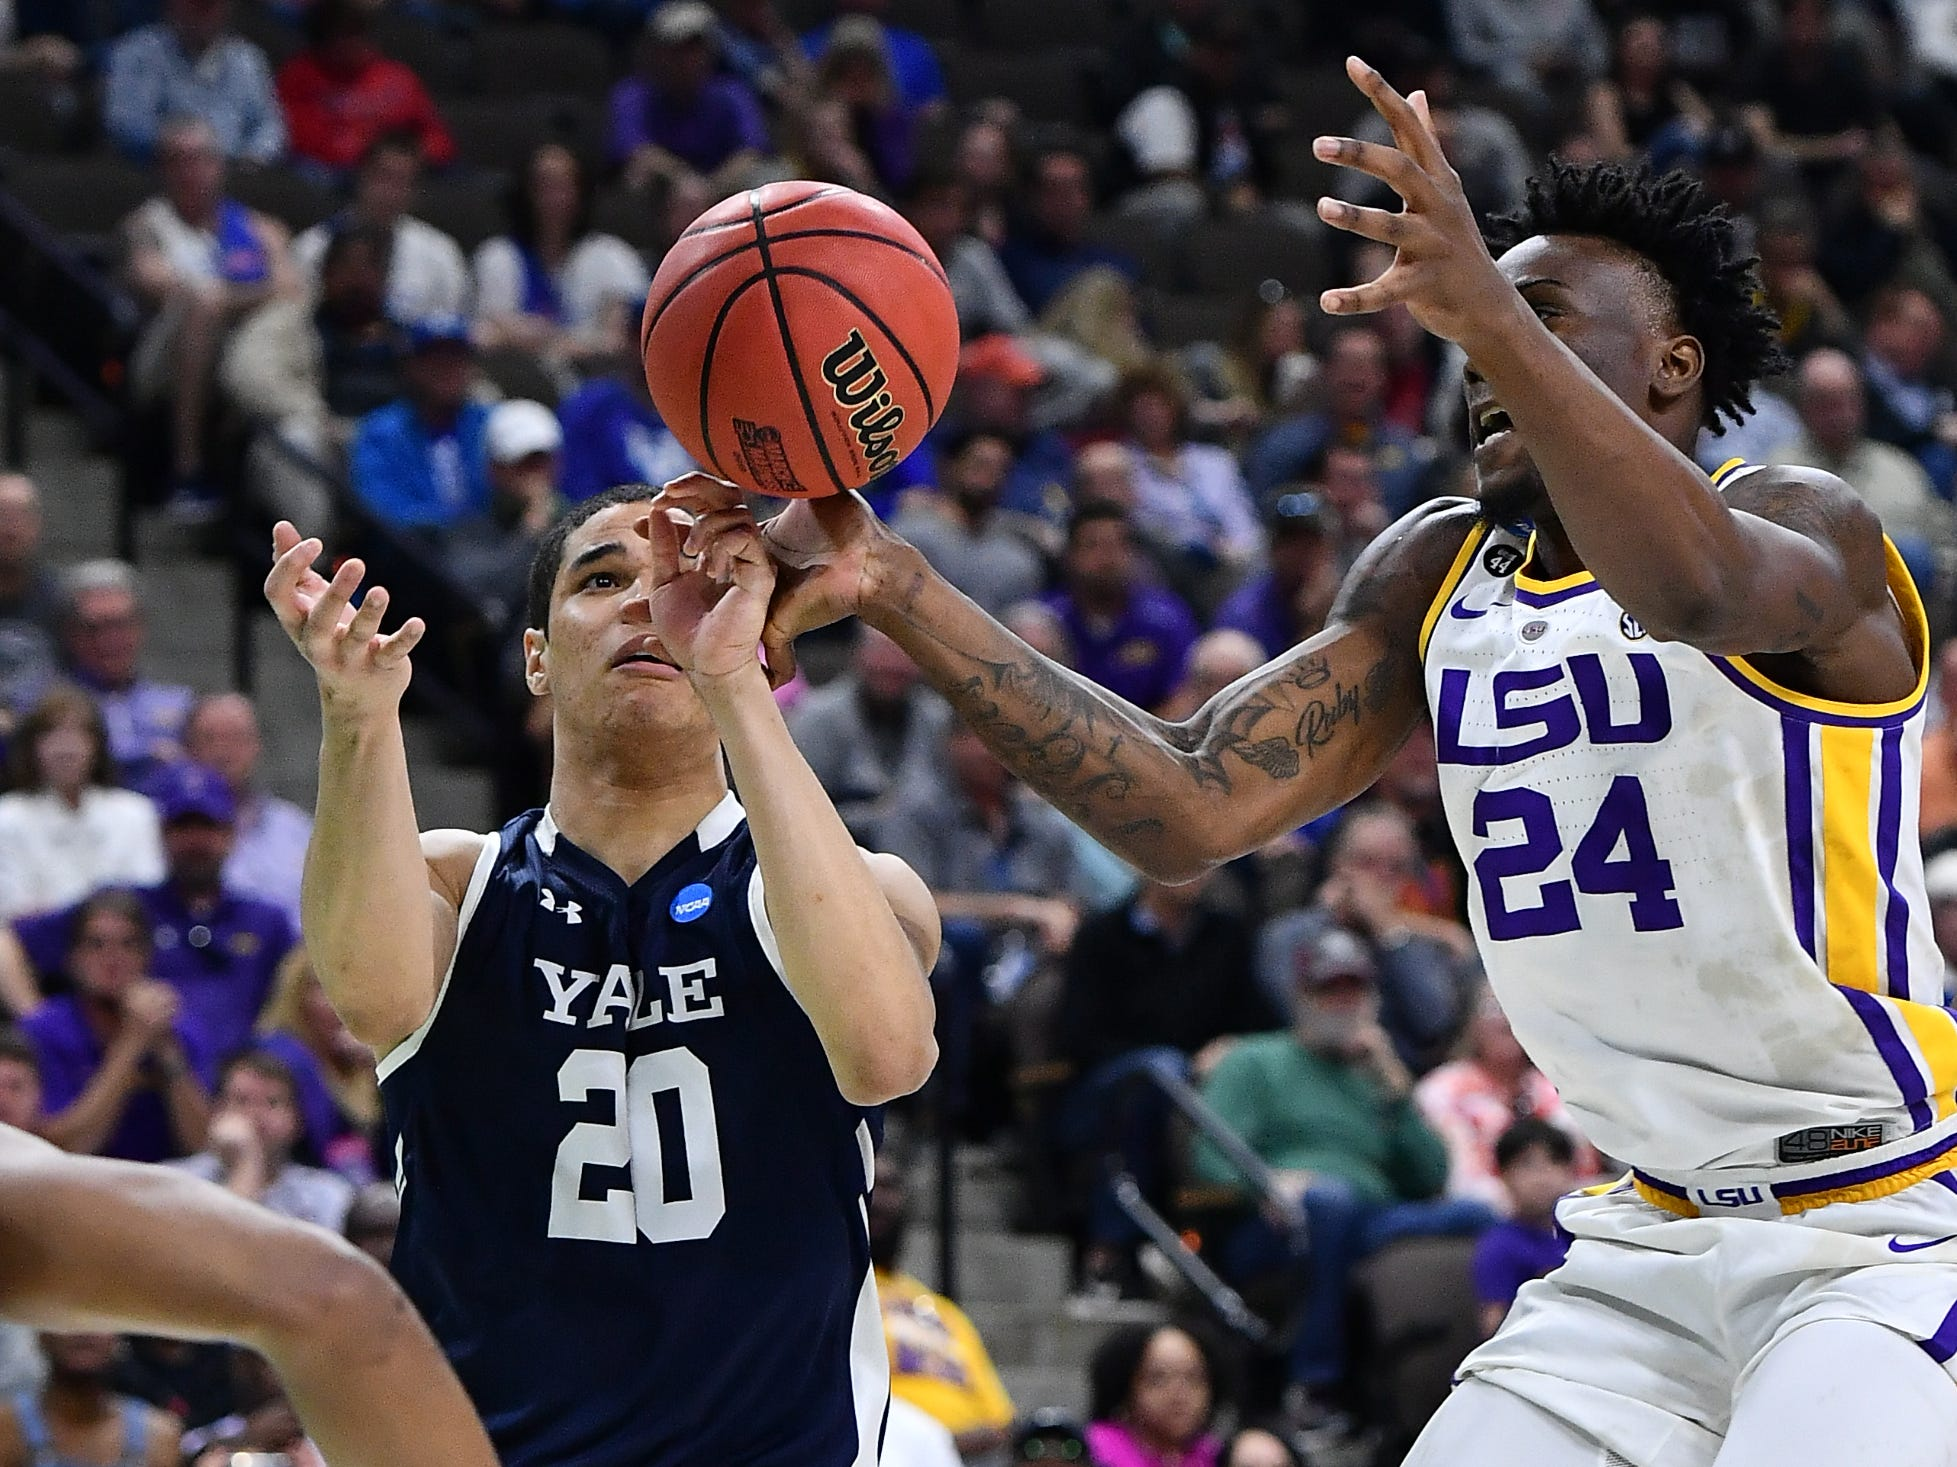 Mar 21, 2019; Jacksonville, FL, USA; Yale Bulldogs forward Paul Atkinson (20) and LSU Tigers forward Emmitt Williams (24) battle for a rebound during the second half in the first round of the 2019 NCAA Tournament at Jacksonville Veterans Memorial Arena. Mandatory Credit: John David Mercer-USA TODAY Sports